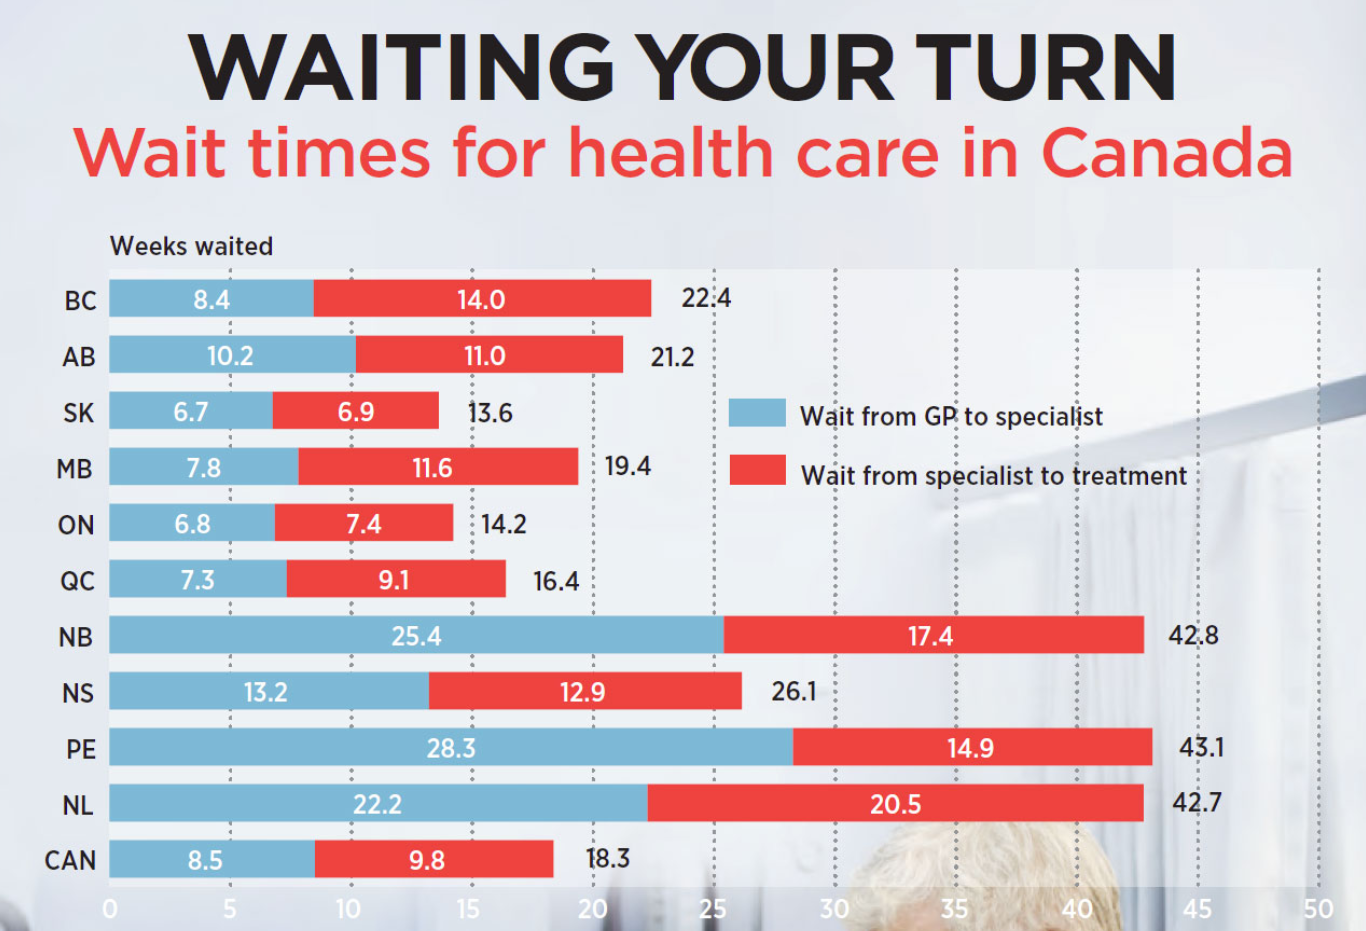 Fraser Institute graphic on wait times by province.